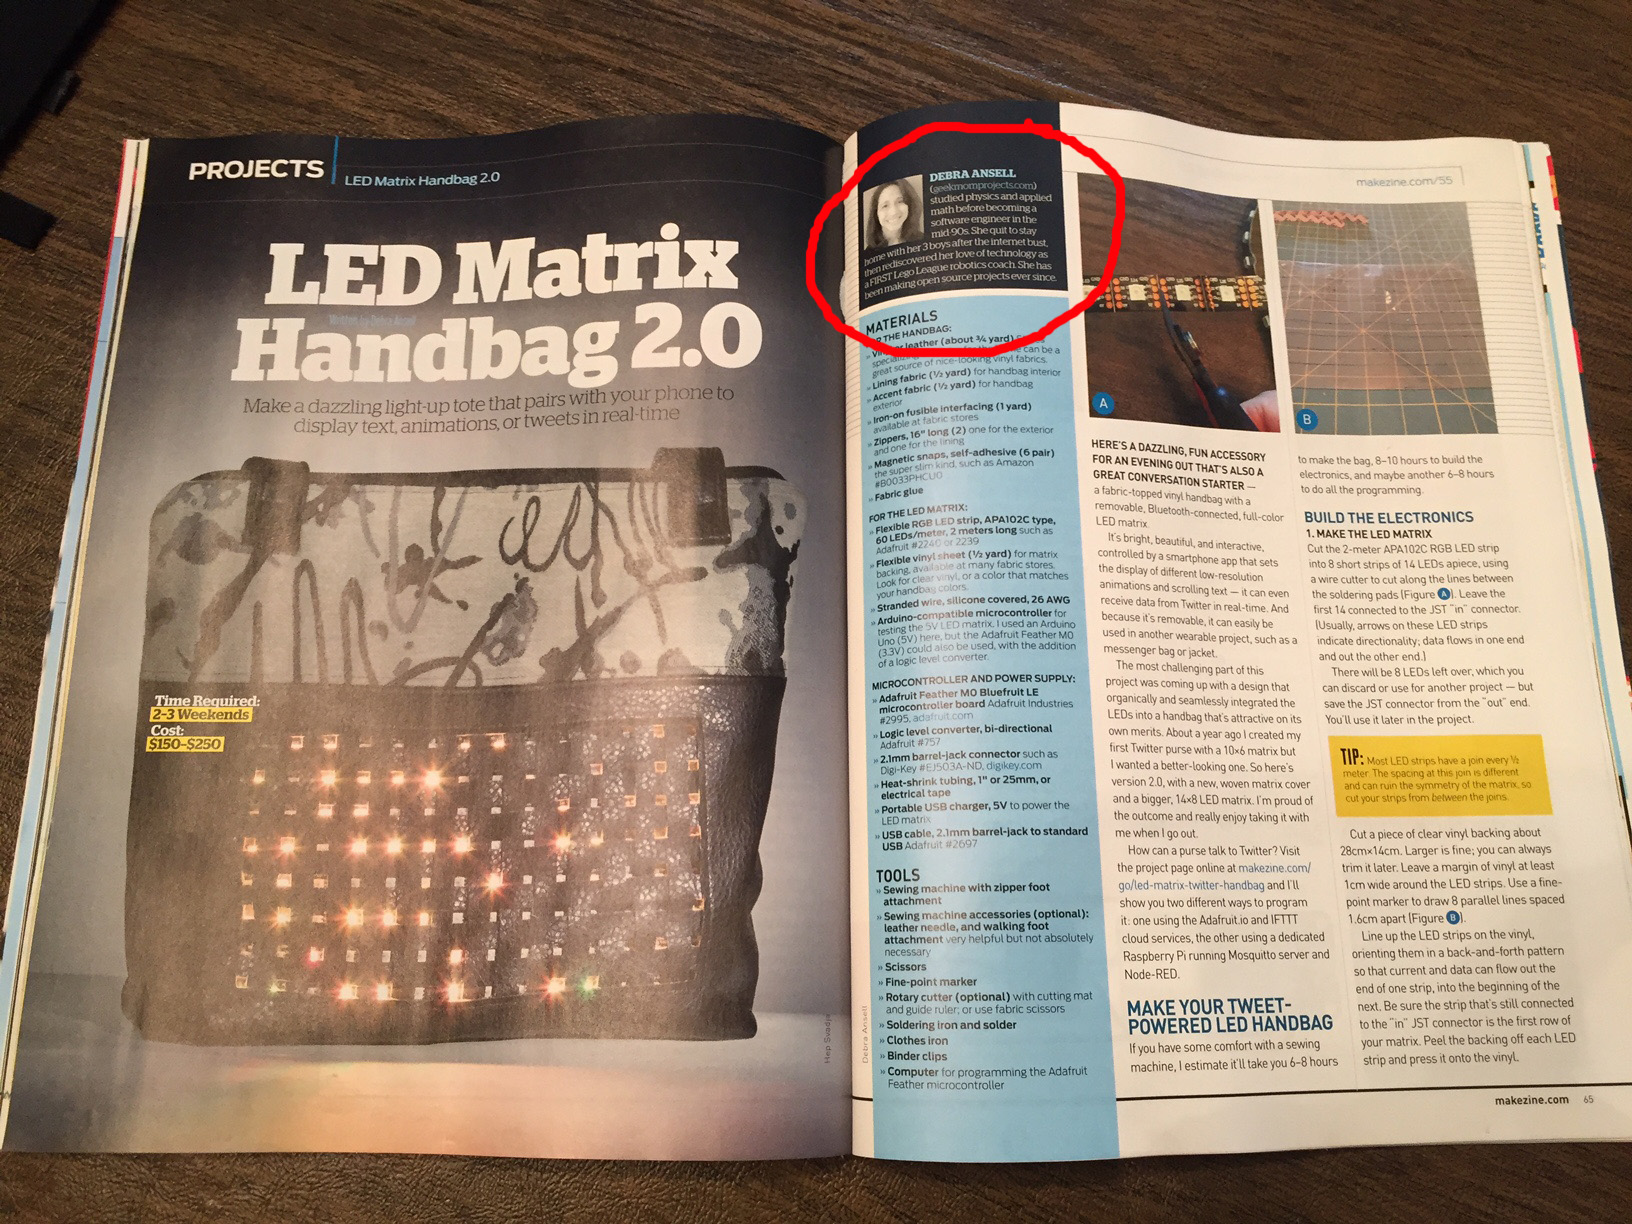 Geek Mom Projects Techie Ideas To Do With Or Without Kids March 2013electronics Project Circuts My Led Matrix Handbag Is Featured In This Months Make Magazine Vol 55 There Also A Link The Article Online